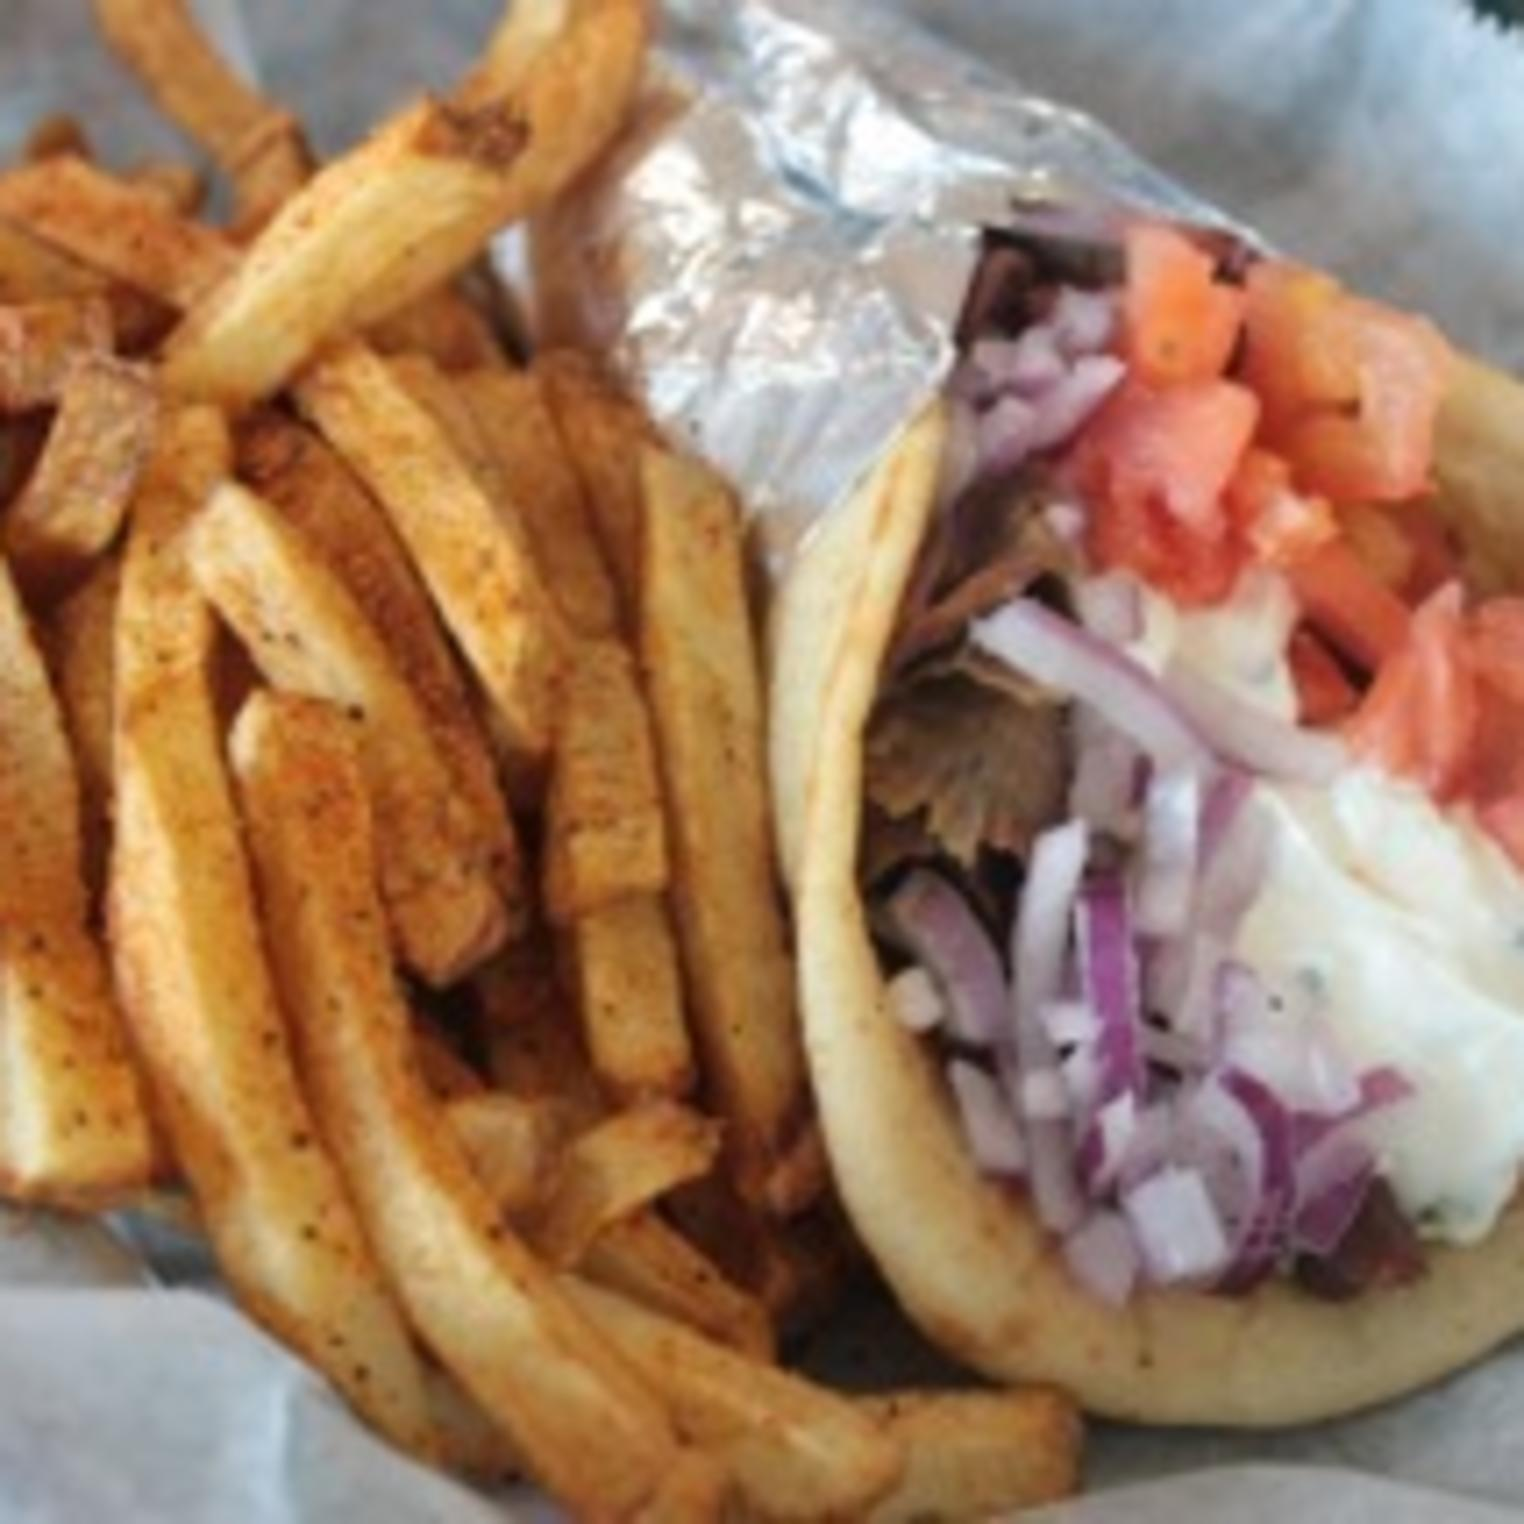 Hellenic Kouzina Gyro and Fries